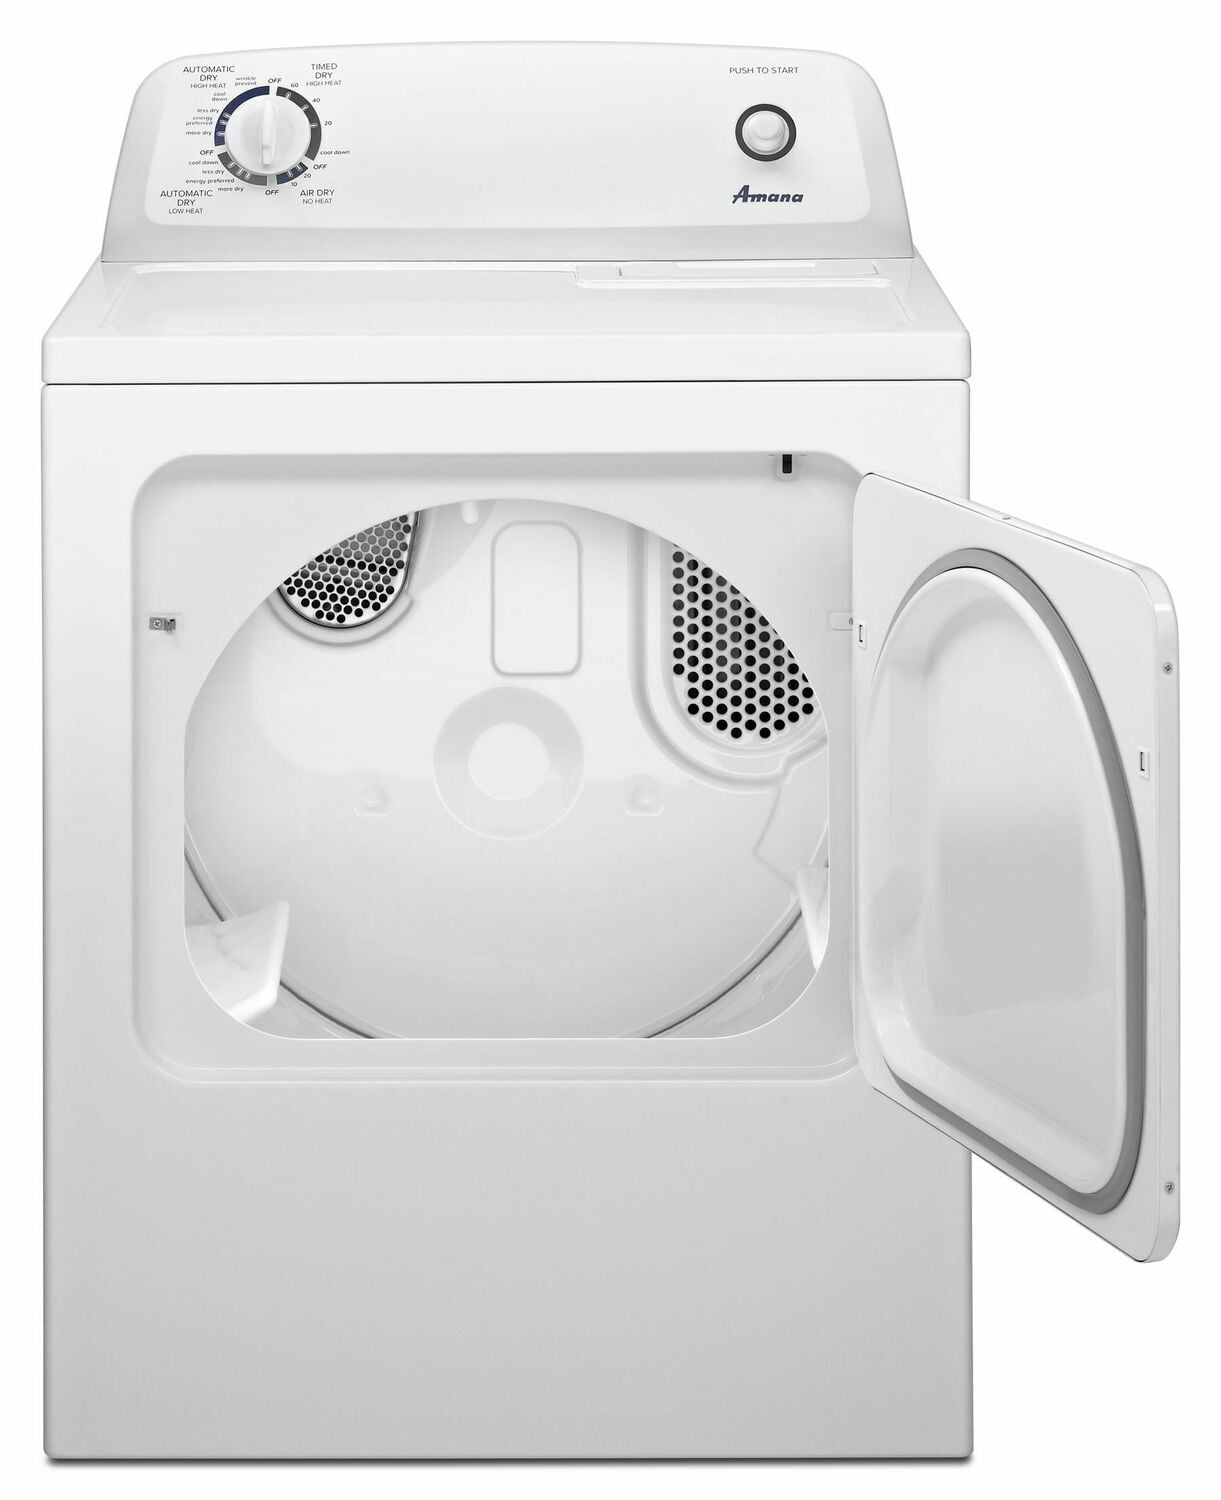 Load image into Gallery viewer, Amana NGD4655EW 6.5 Cu. Ft. Gas Dryer With Wrinkle Prevent Option - White